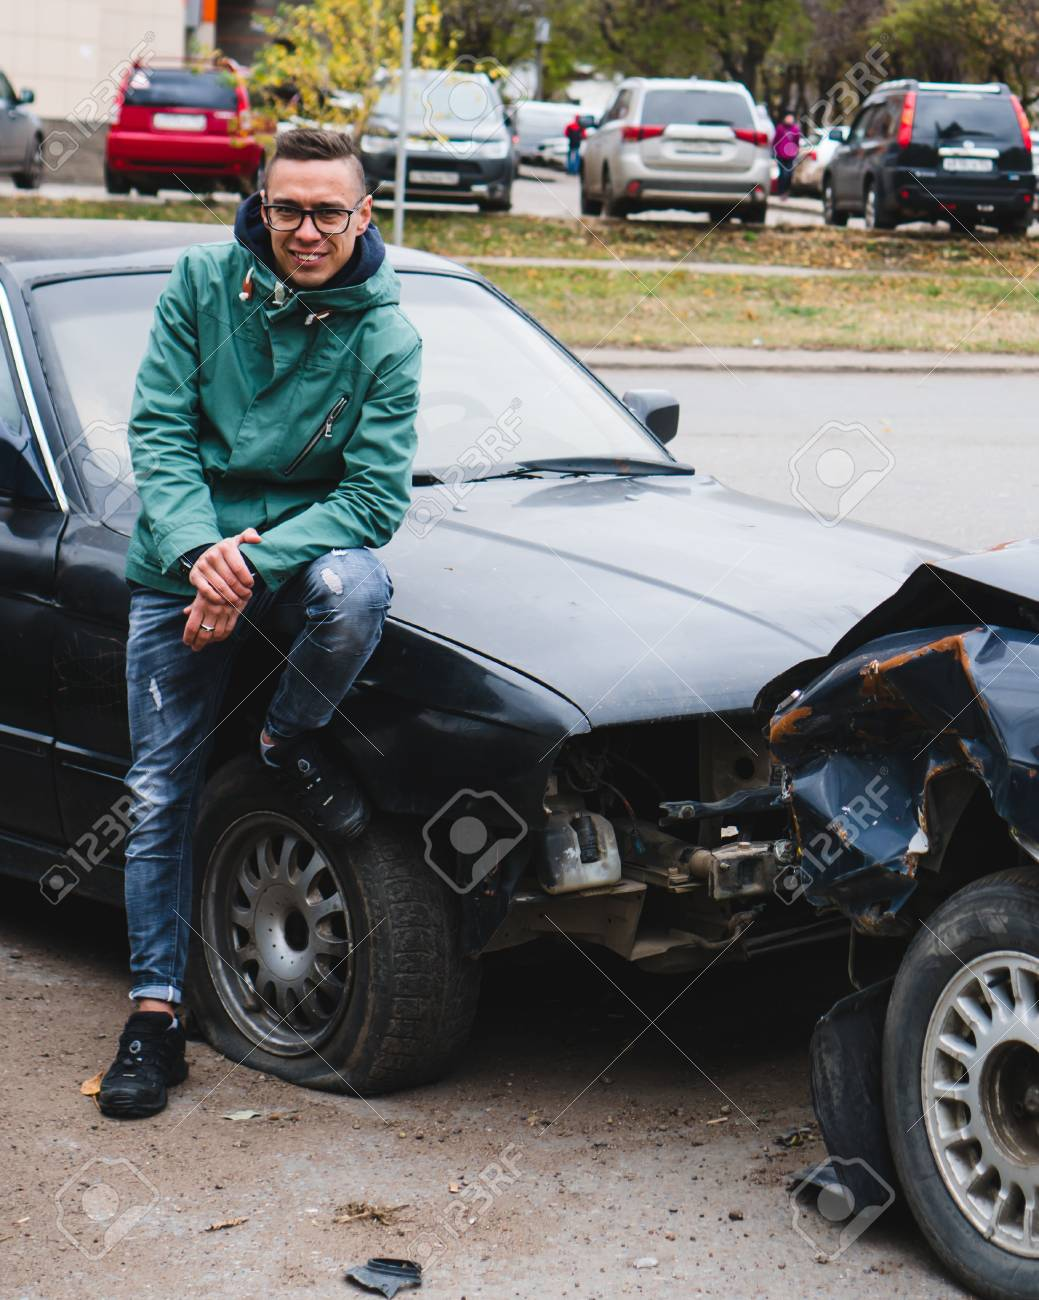 Man In Glasses And Jacket Is Smiling At A Two Wrecked Cars Stock Photo,  Picture And Royalty Free Image. Image 109945098.